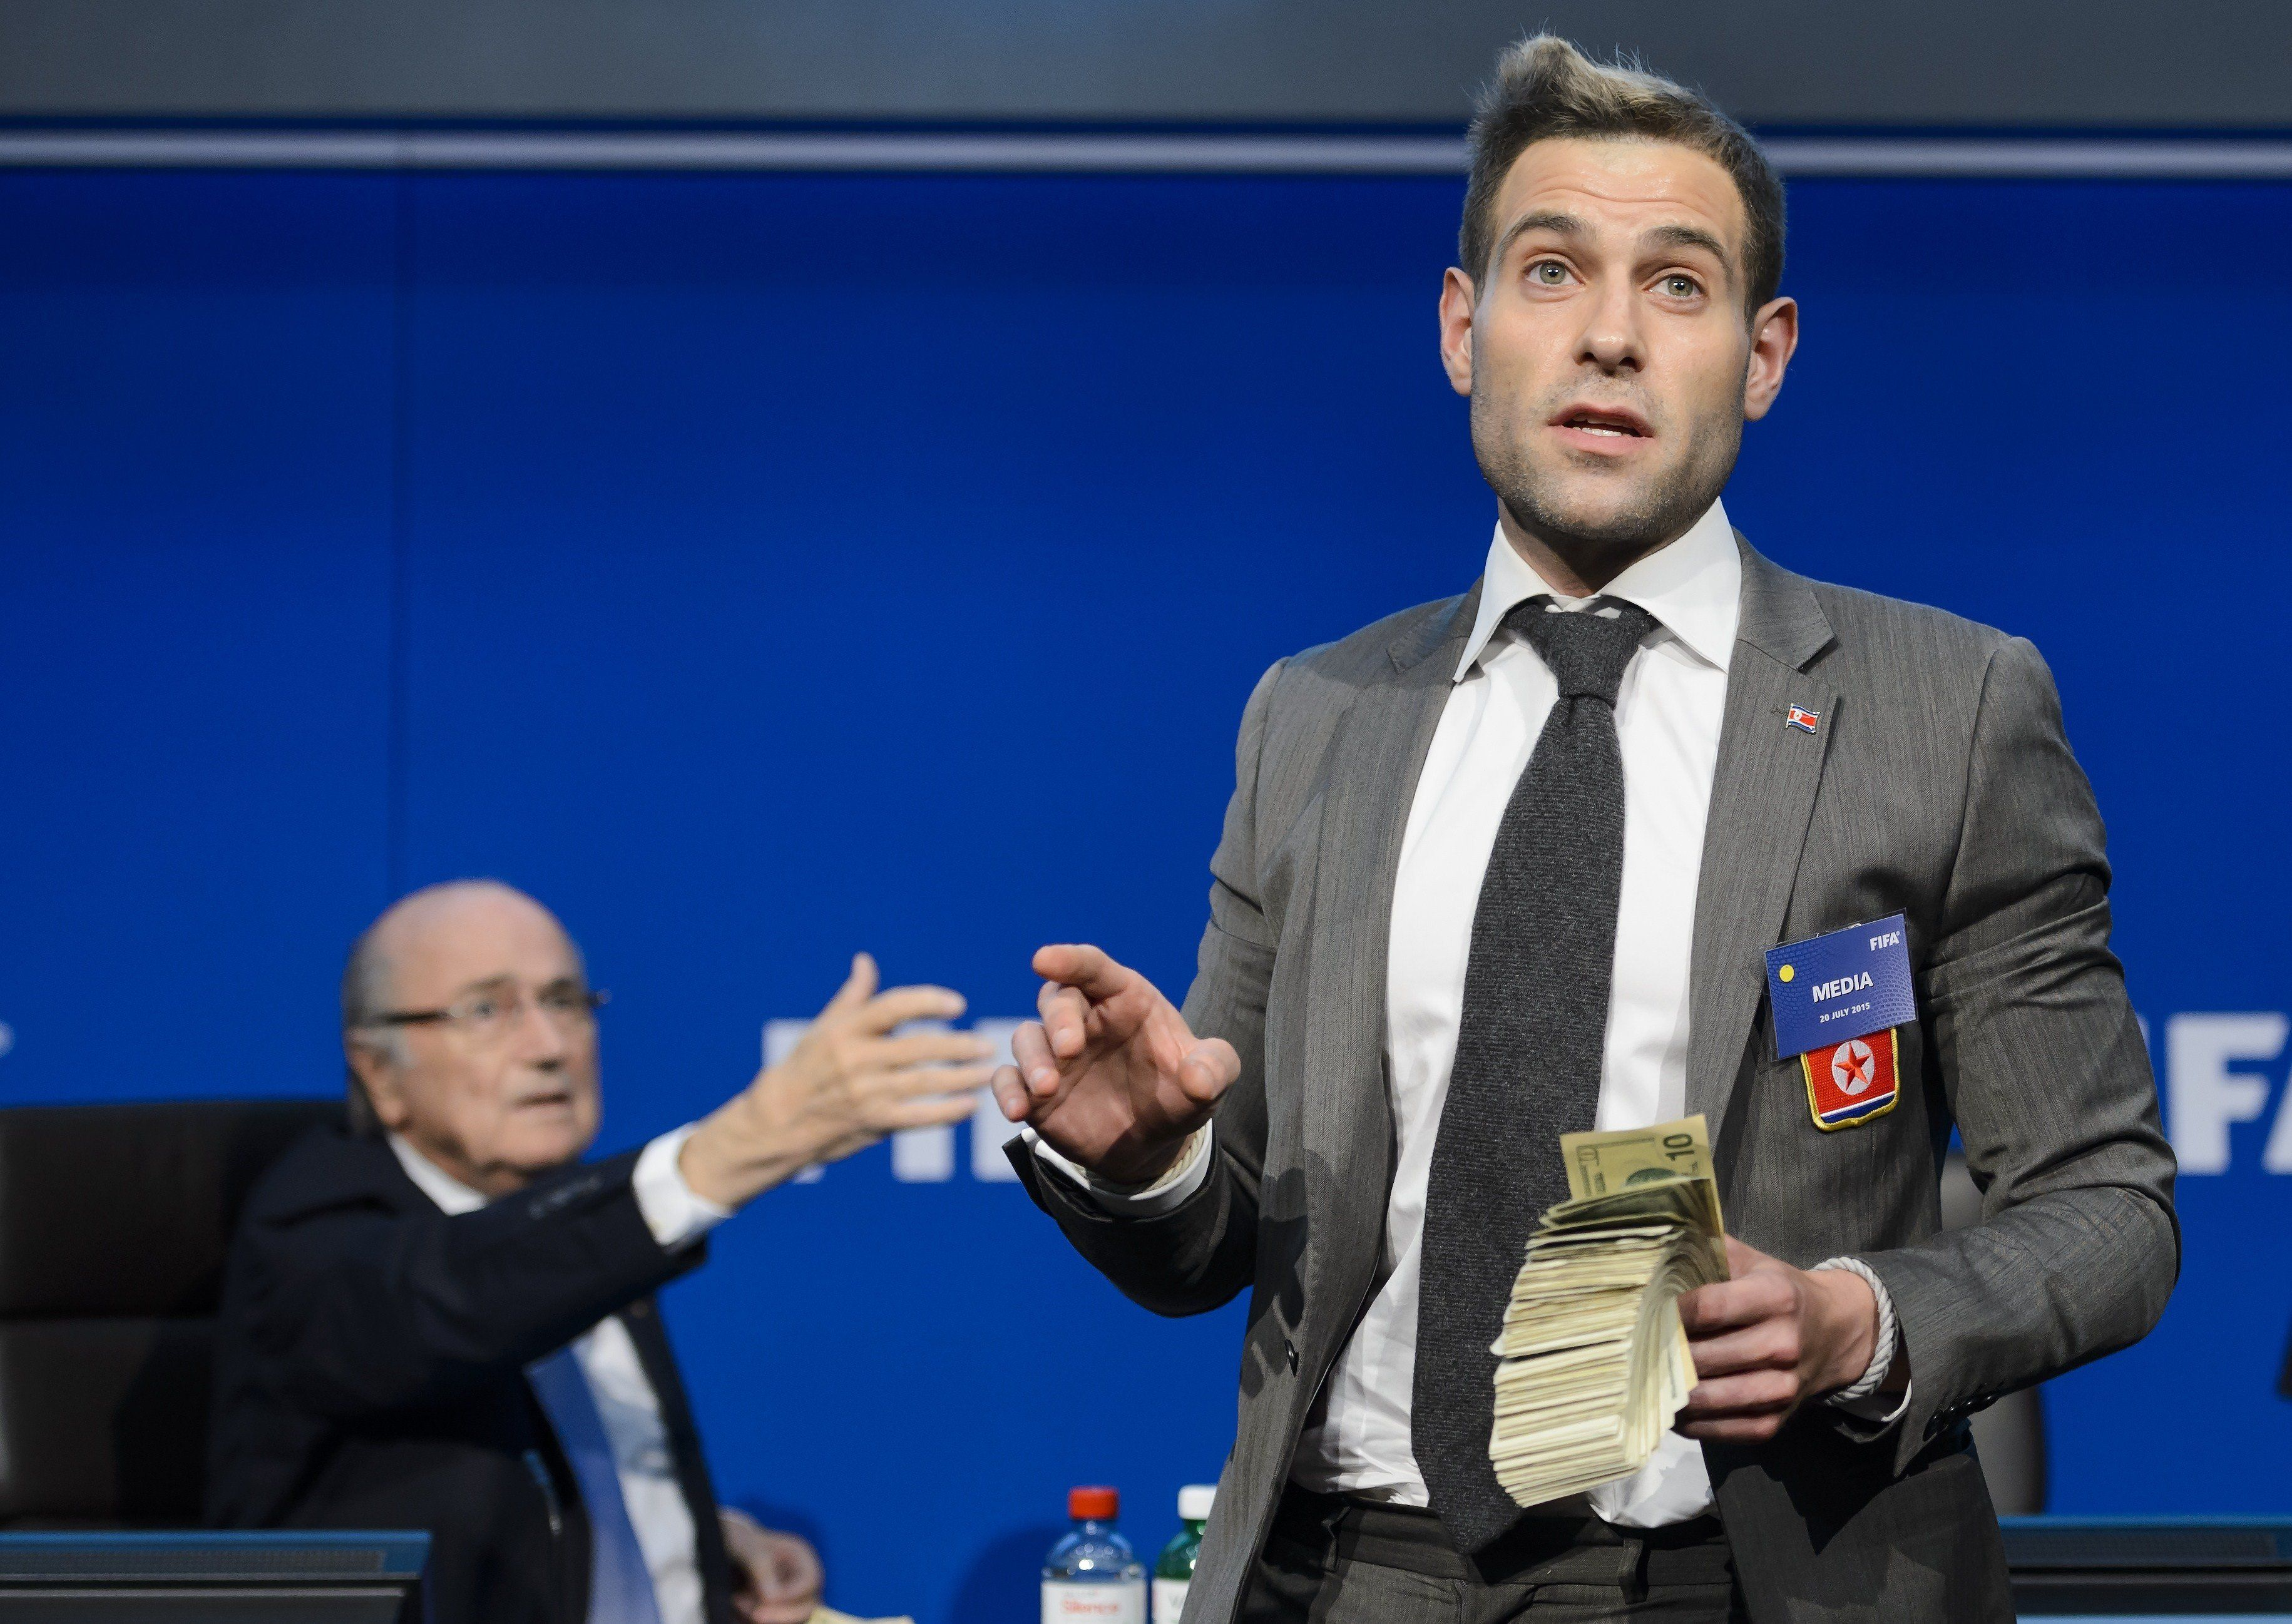 Relive 'Britain's Greatest Hoaxer' Simon Brodkin's Most Famous